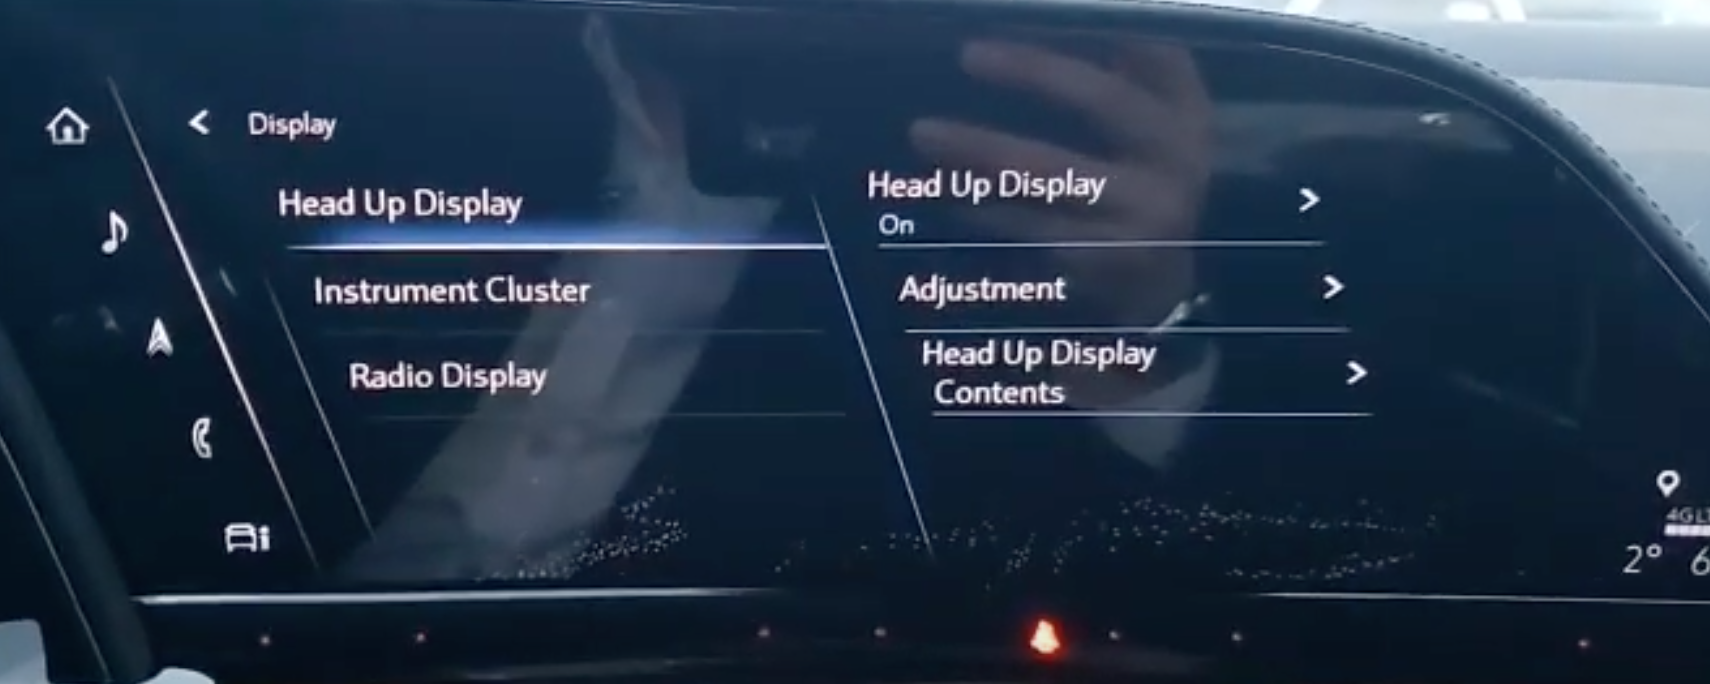 Adjusting the settings for head up display such as contents and location